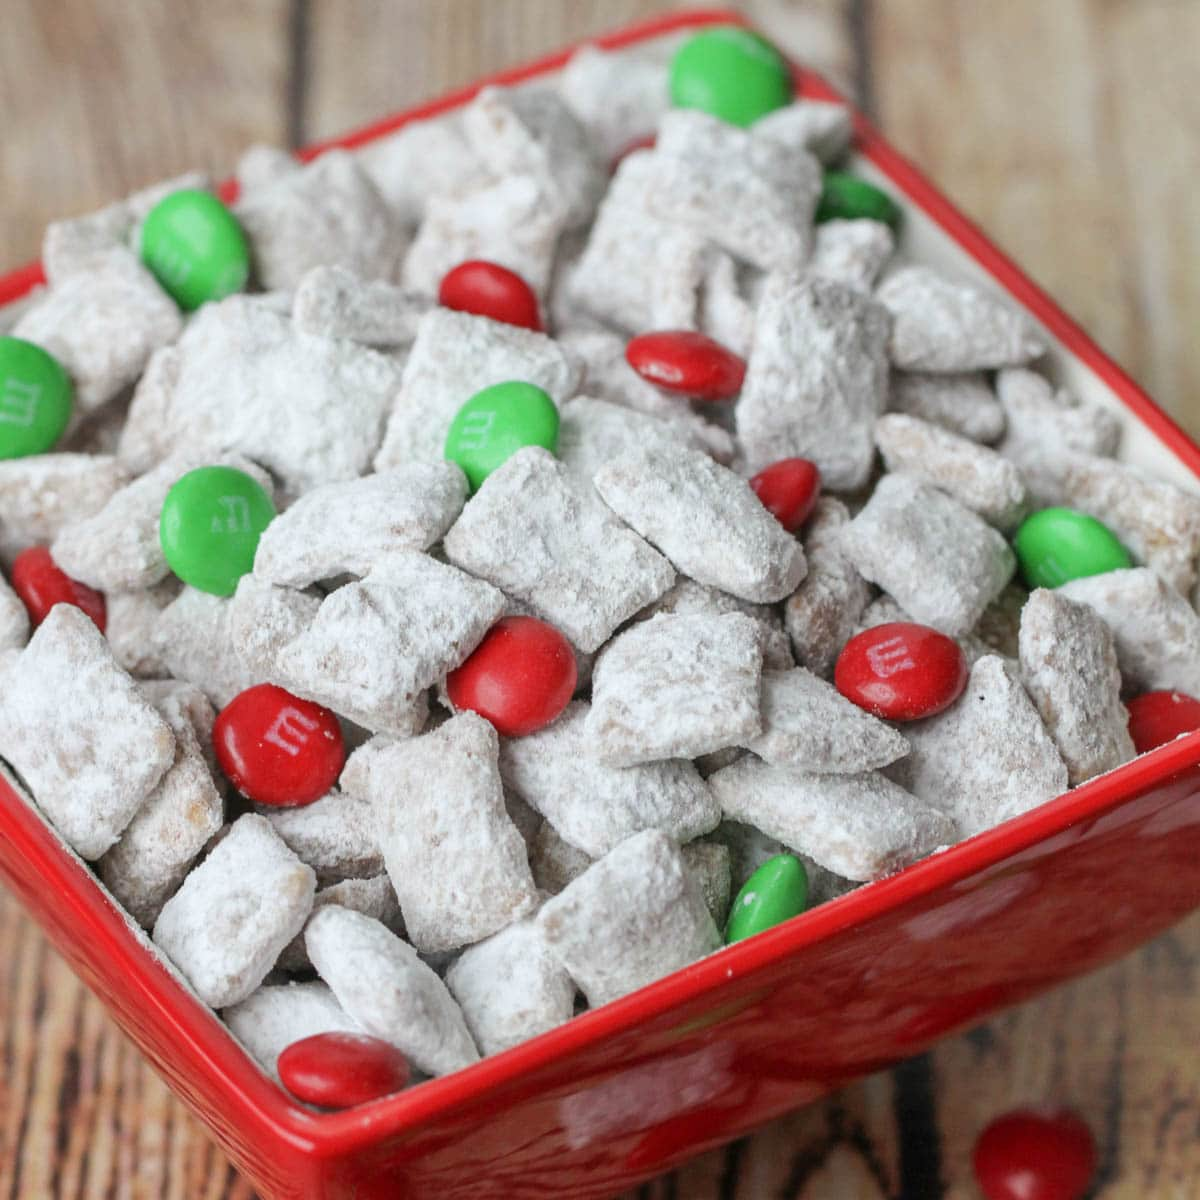 Christmas puppy chow tossed with holiday M&Ms in a red bowl